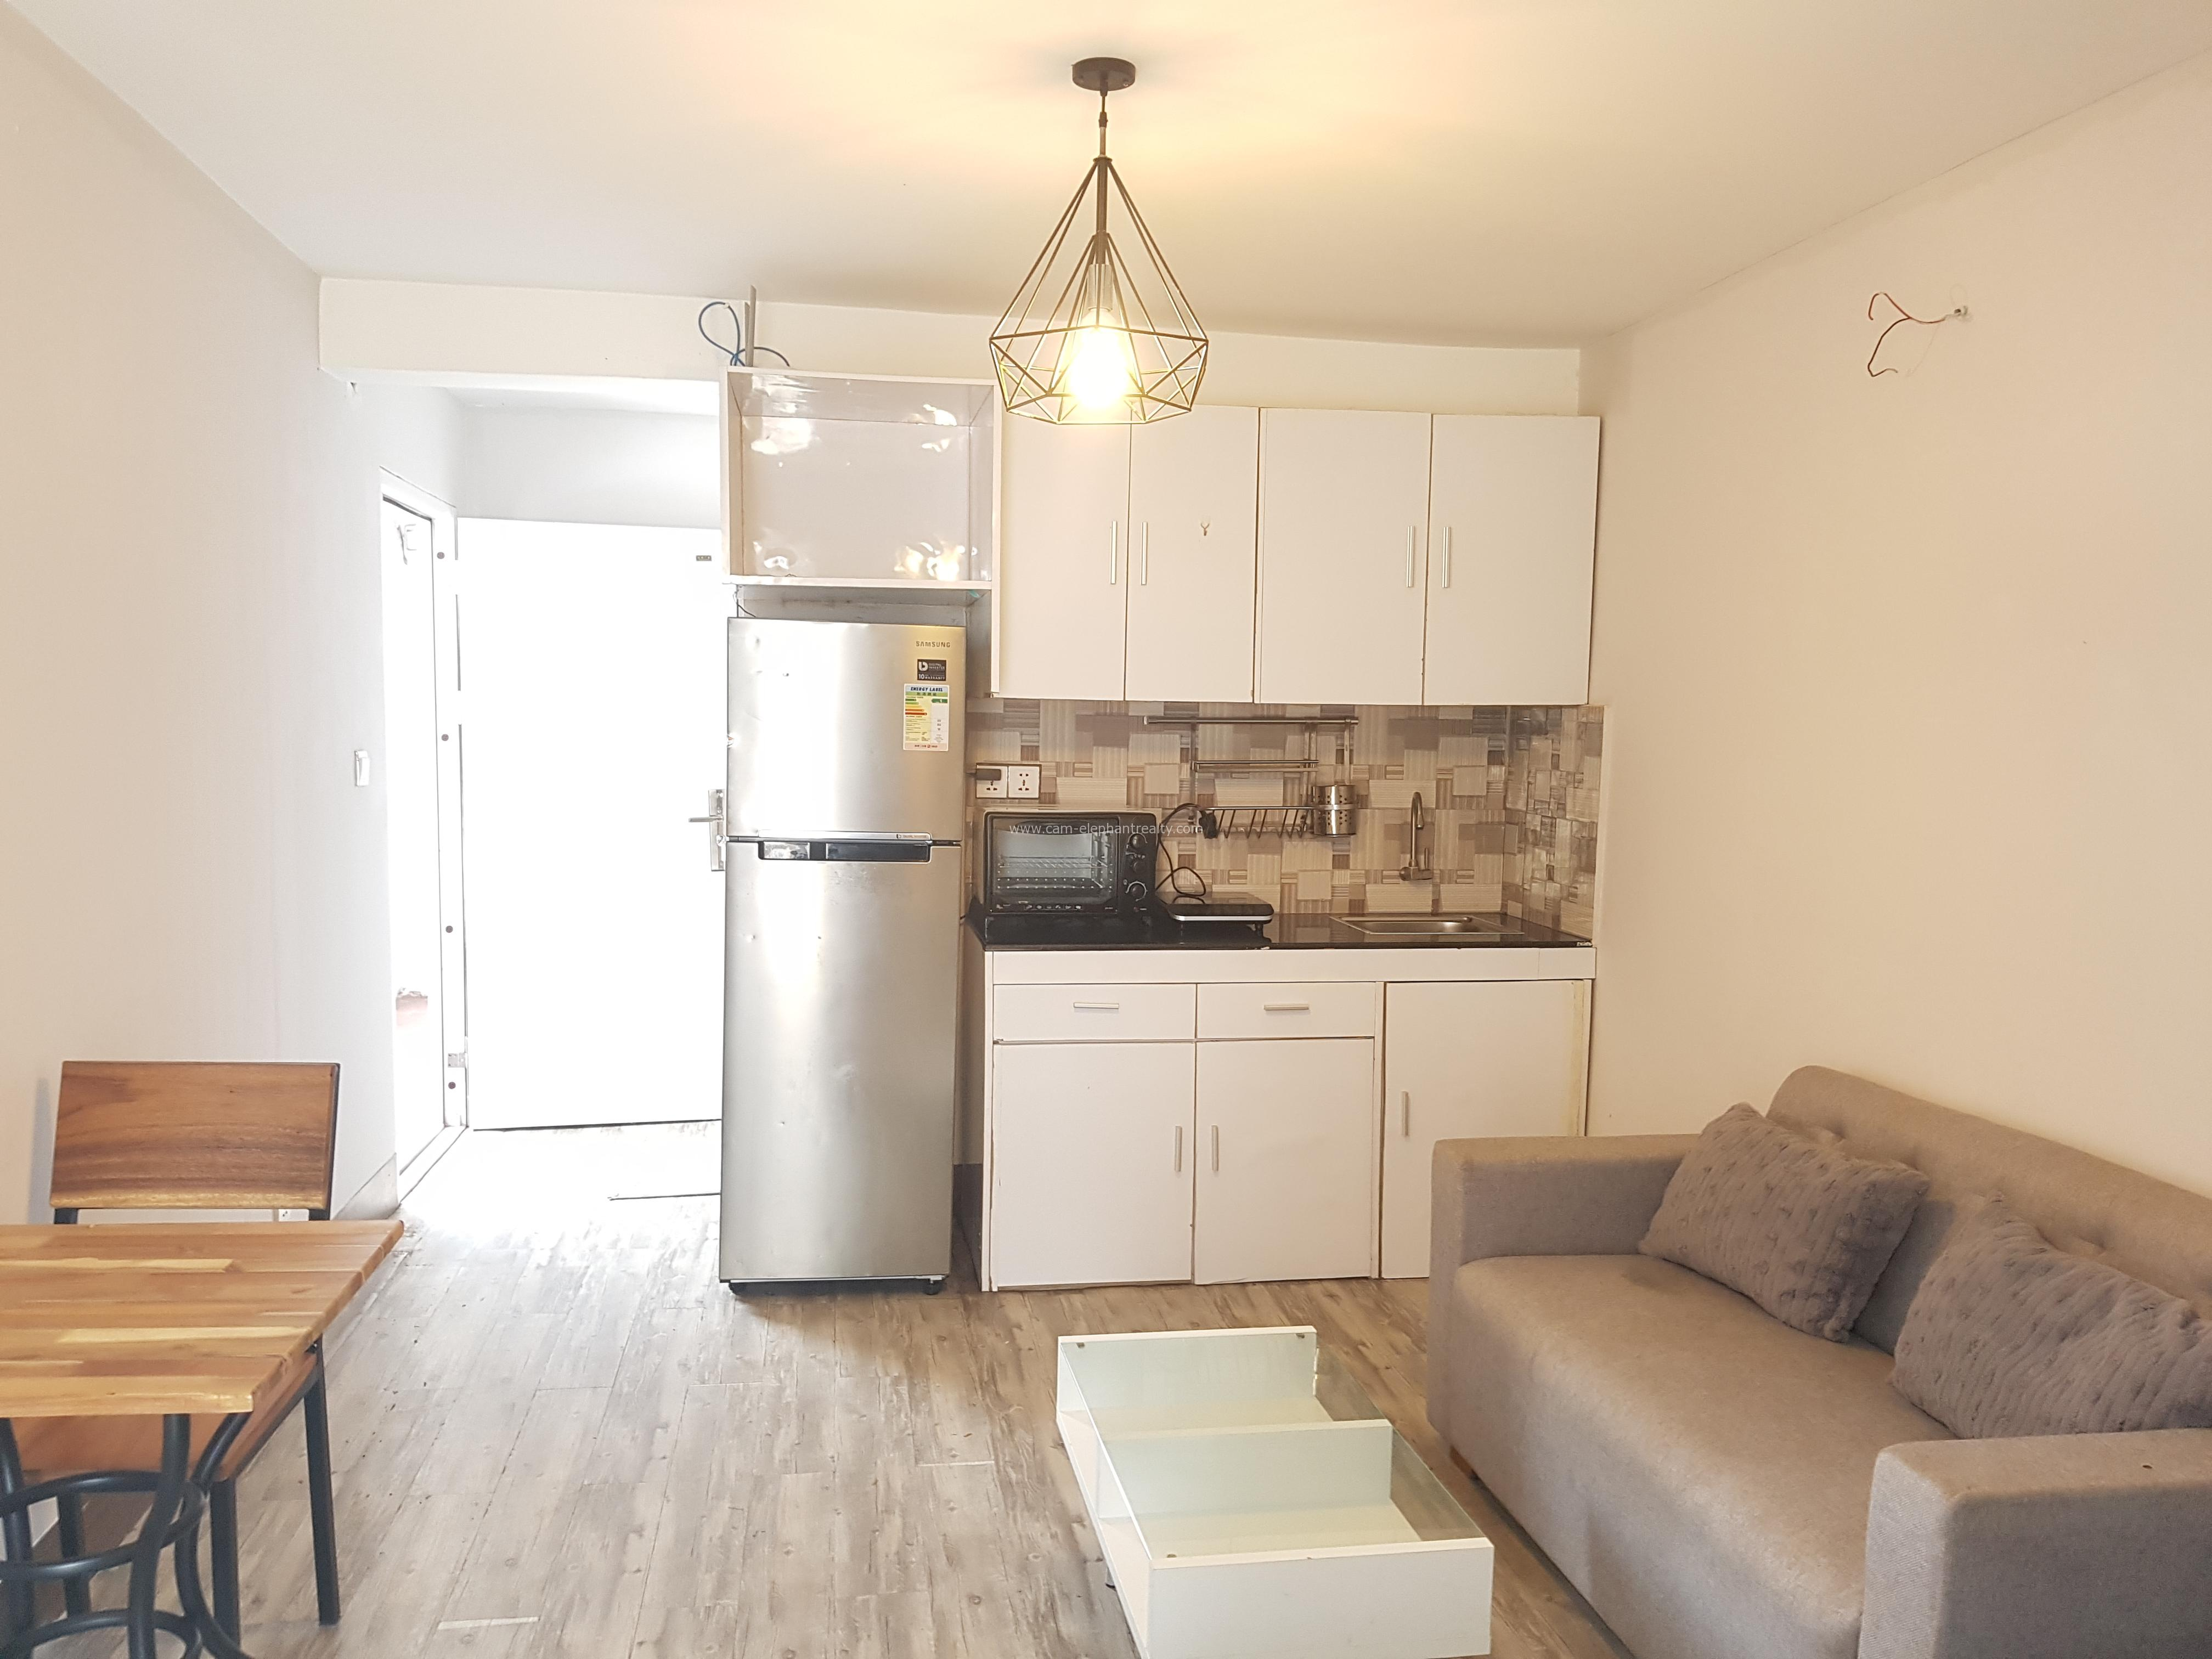 Western Studio Apartment $250/month with balcony Russian Market